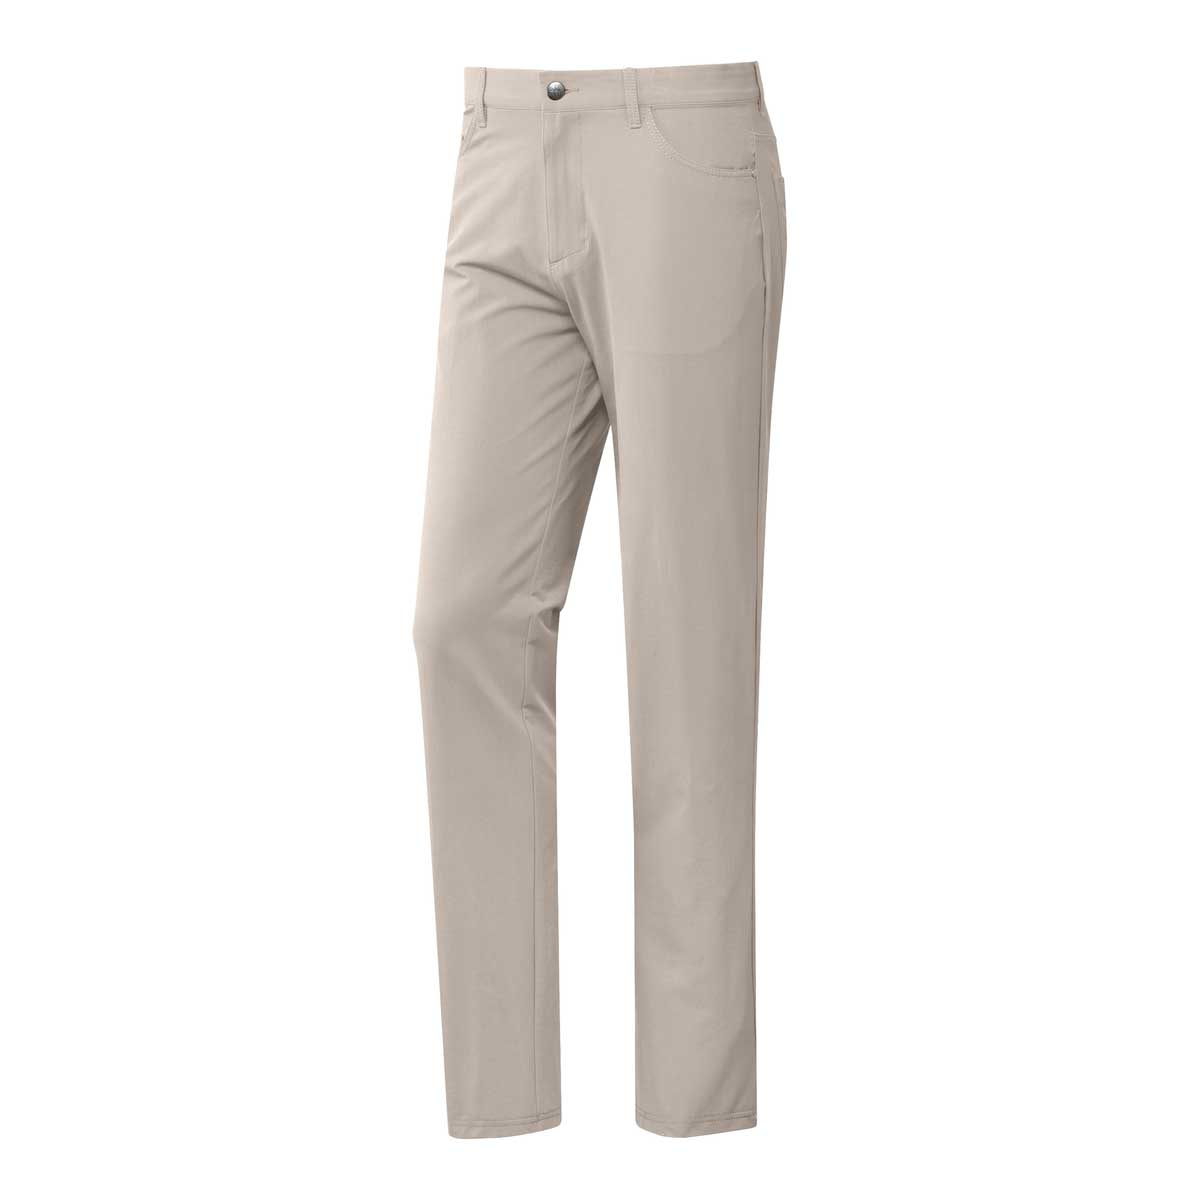 Adidas Men's Go-To Five Pocket Clear Brown Pant